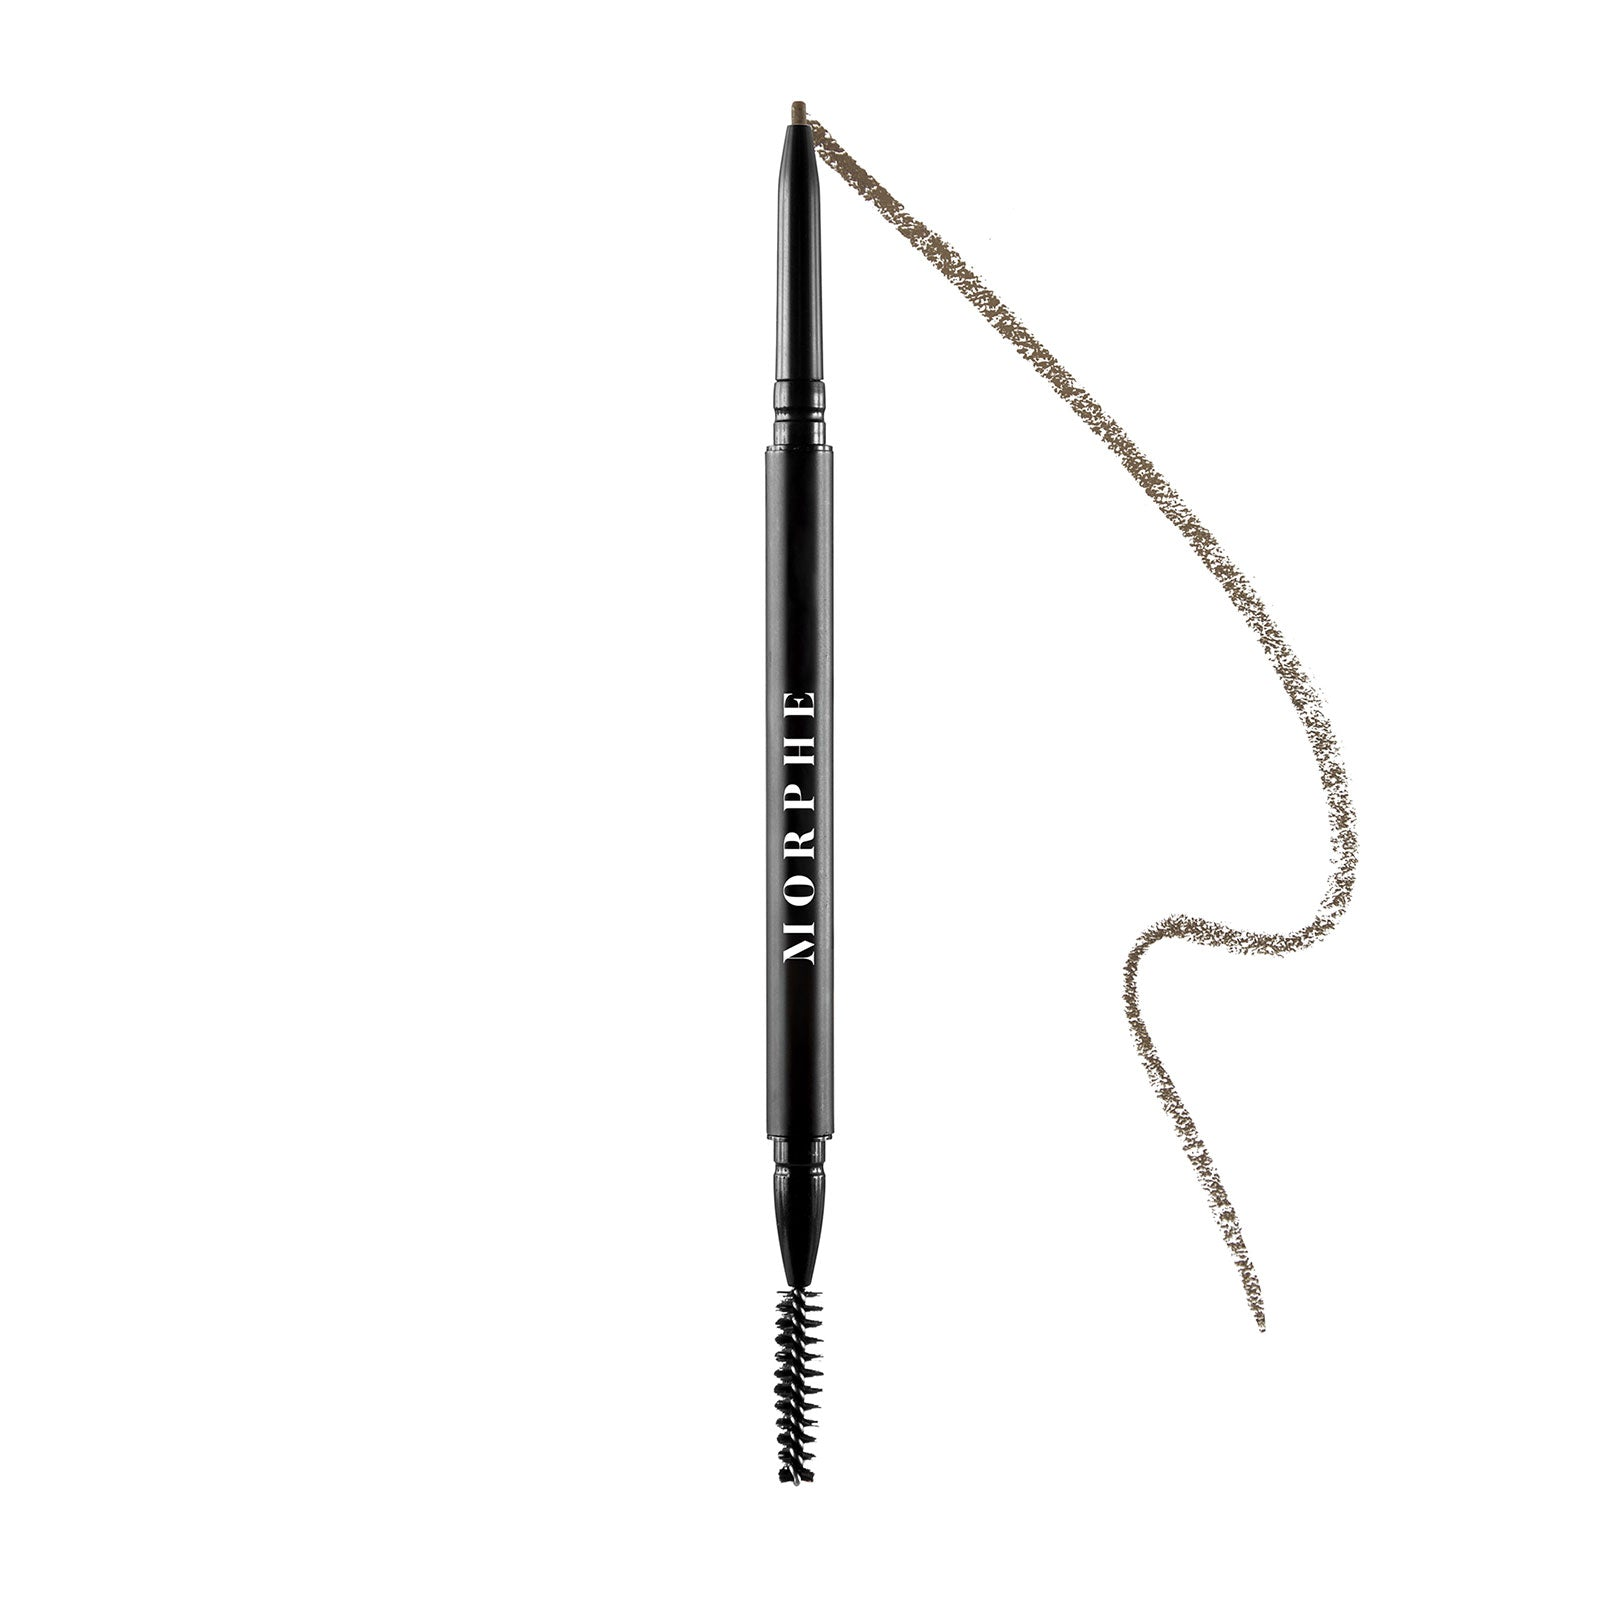 Morphe Micro Brow Pencil 0.1g